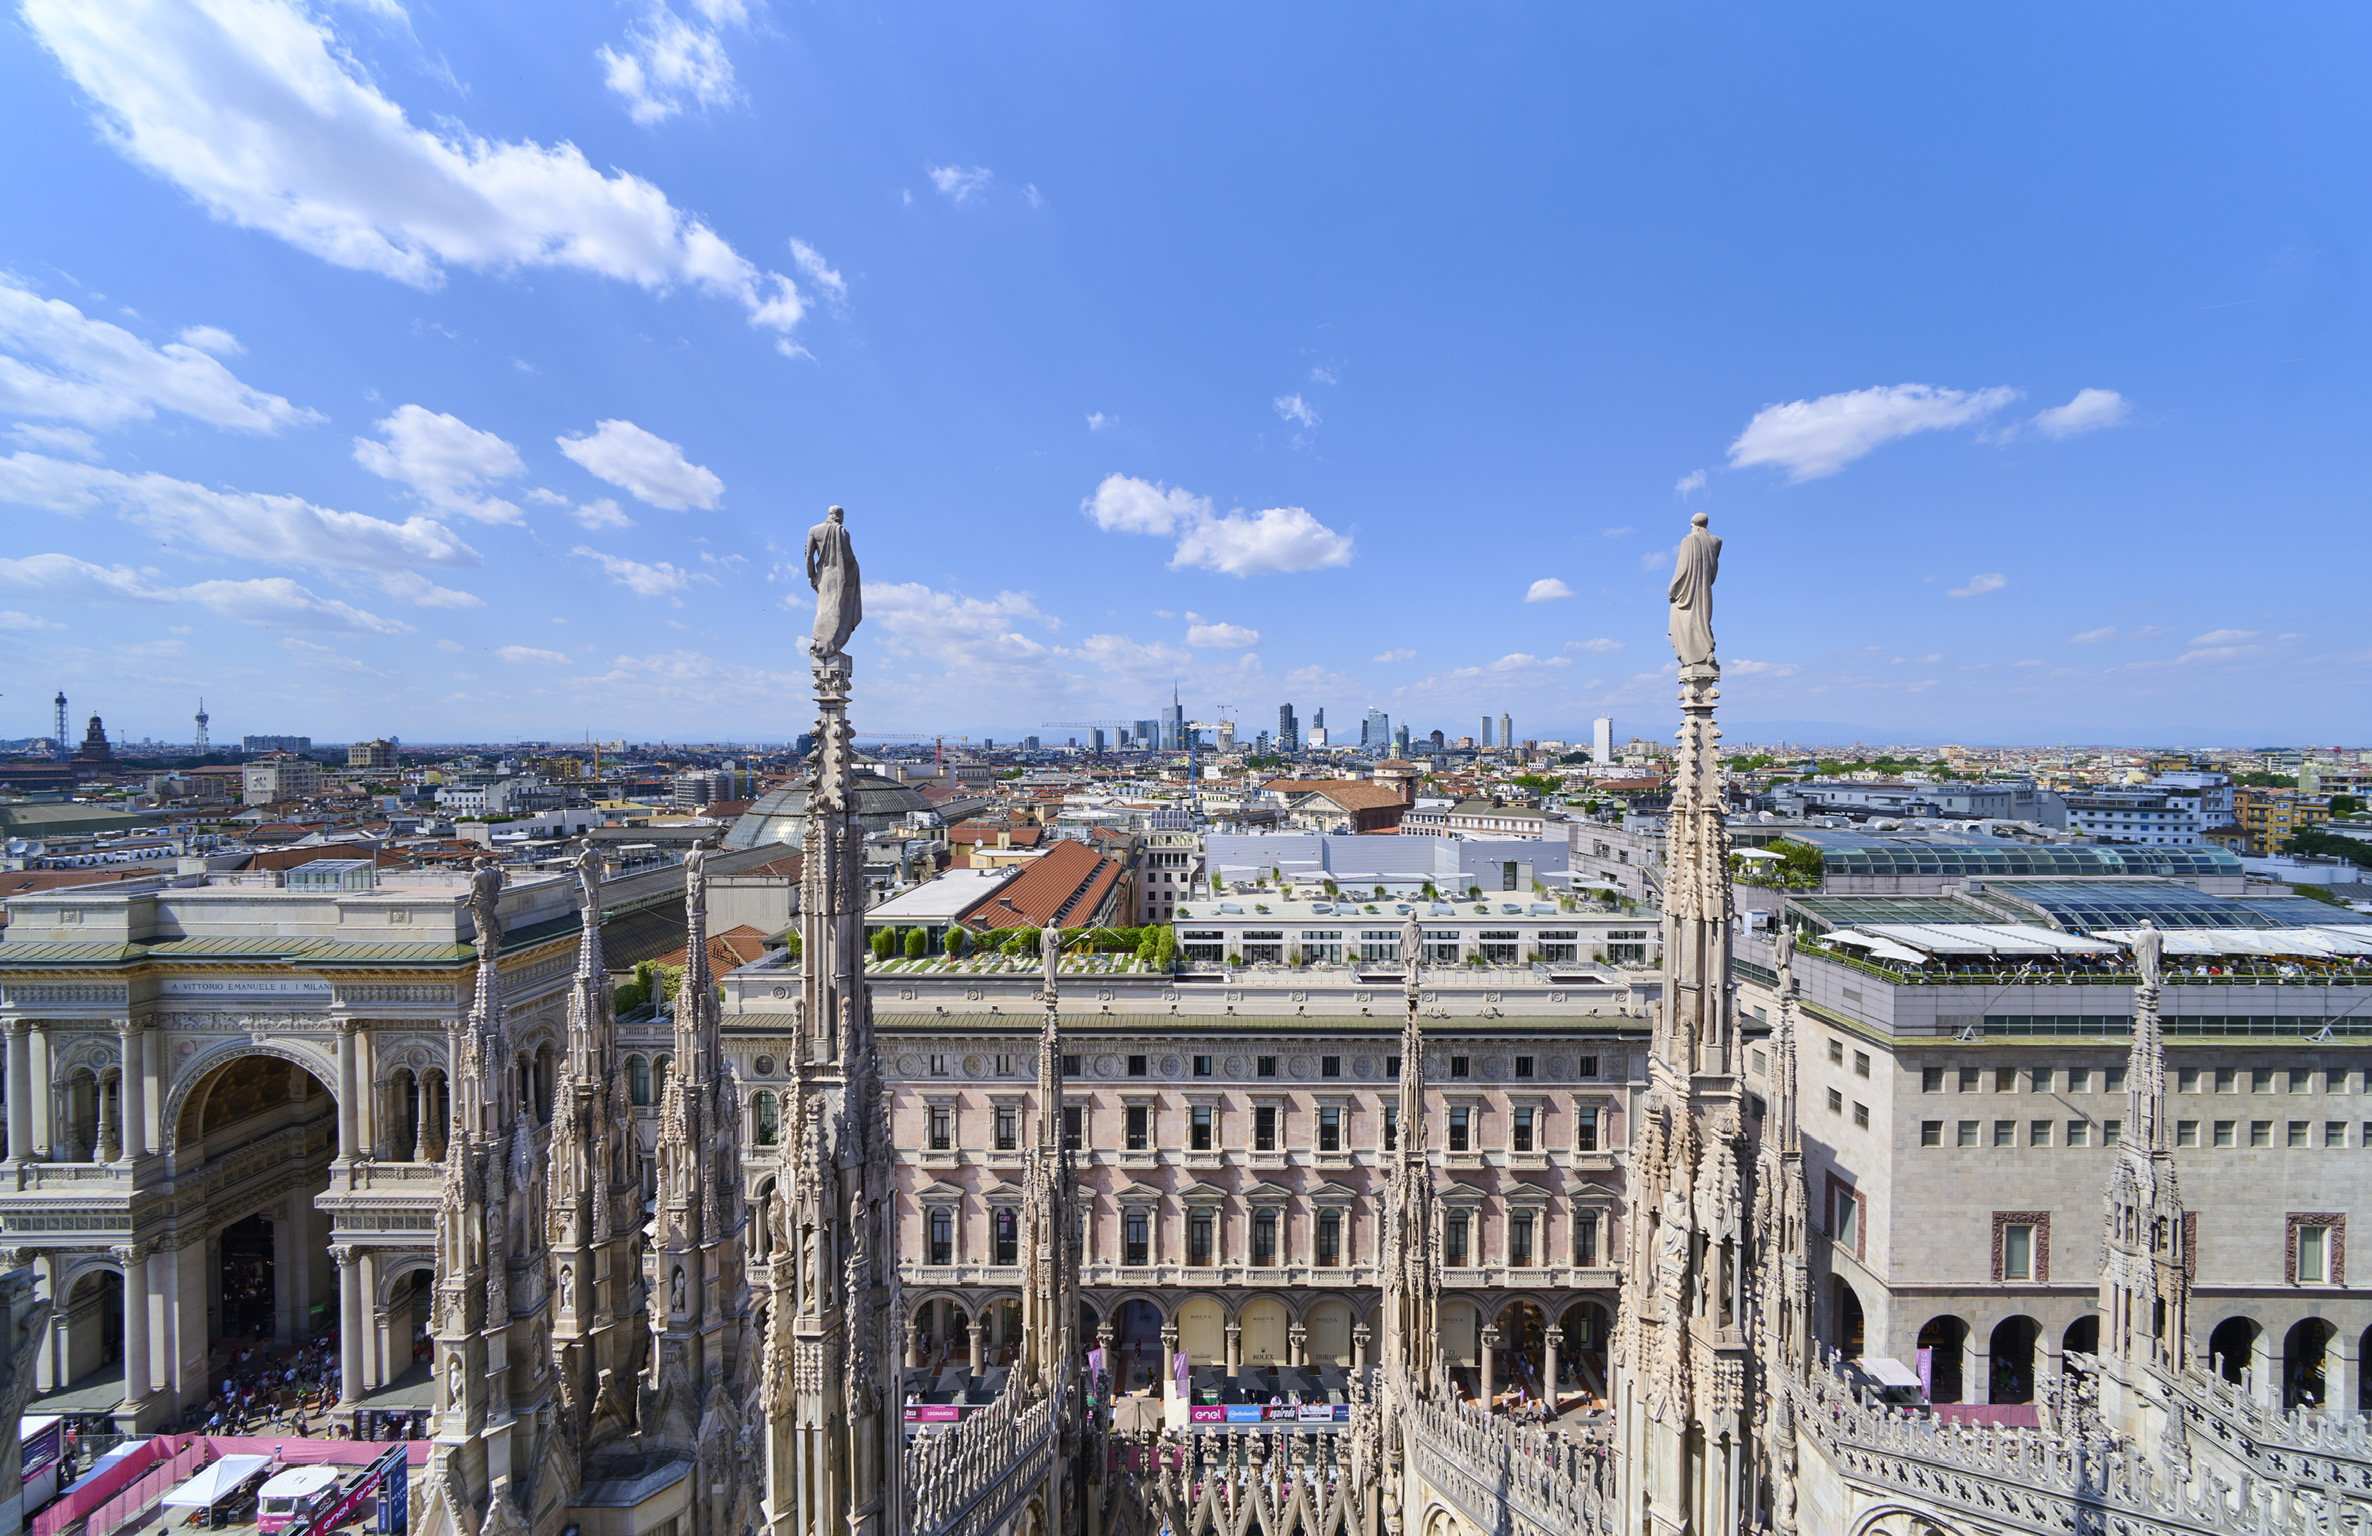 Postcards from the Duomo...